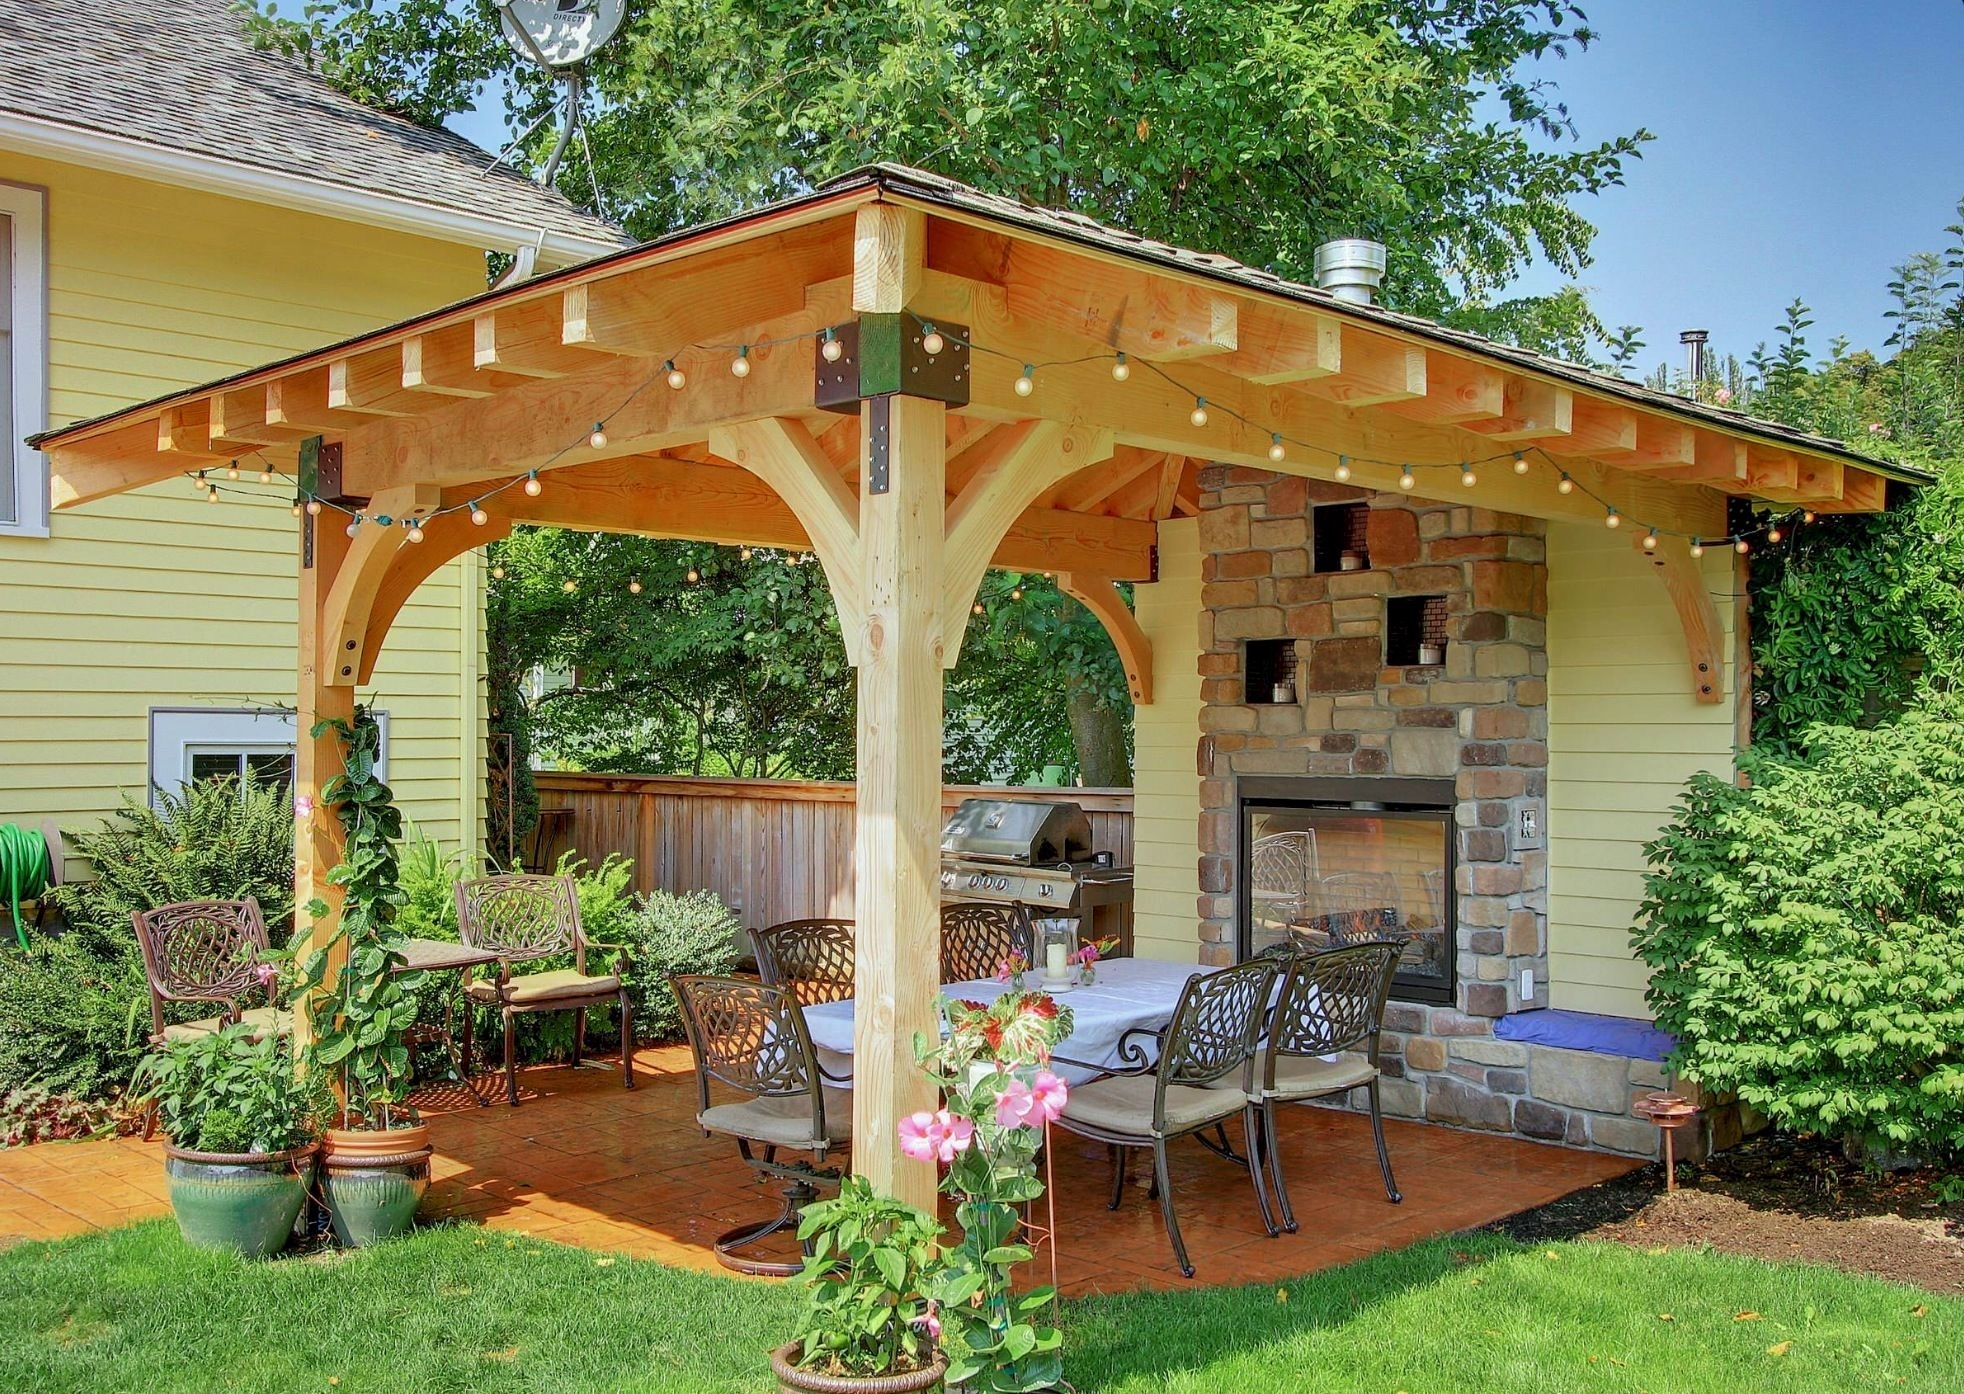 Backyard Expressions Garden Pergola Luxury Thanks To The Fireplace A intended for Backyard Expressions Garden Pergola